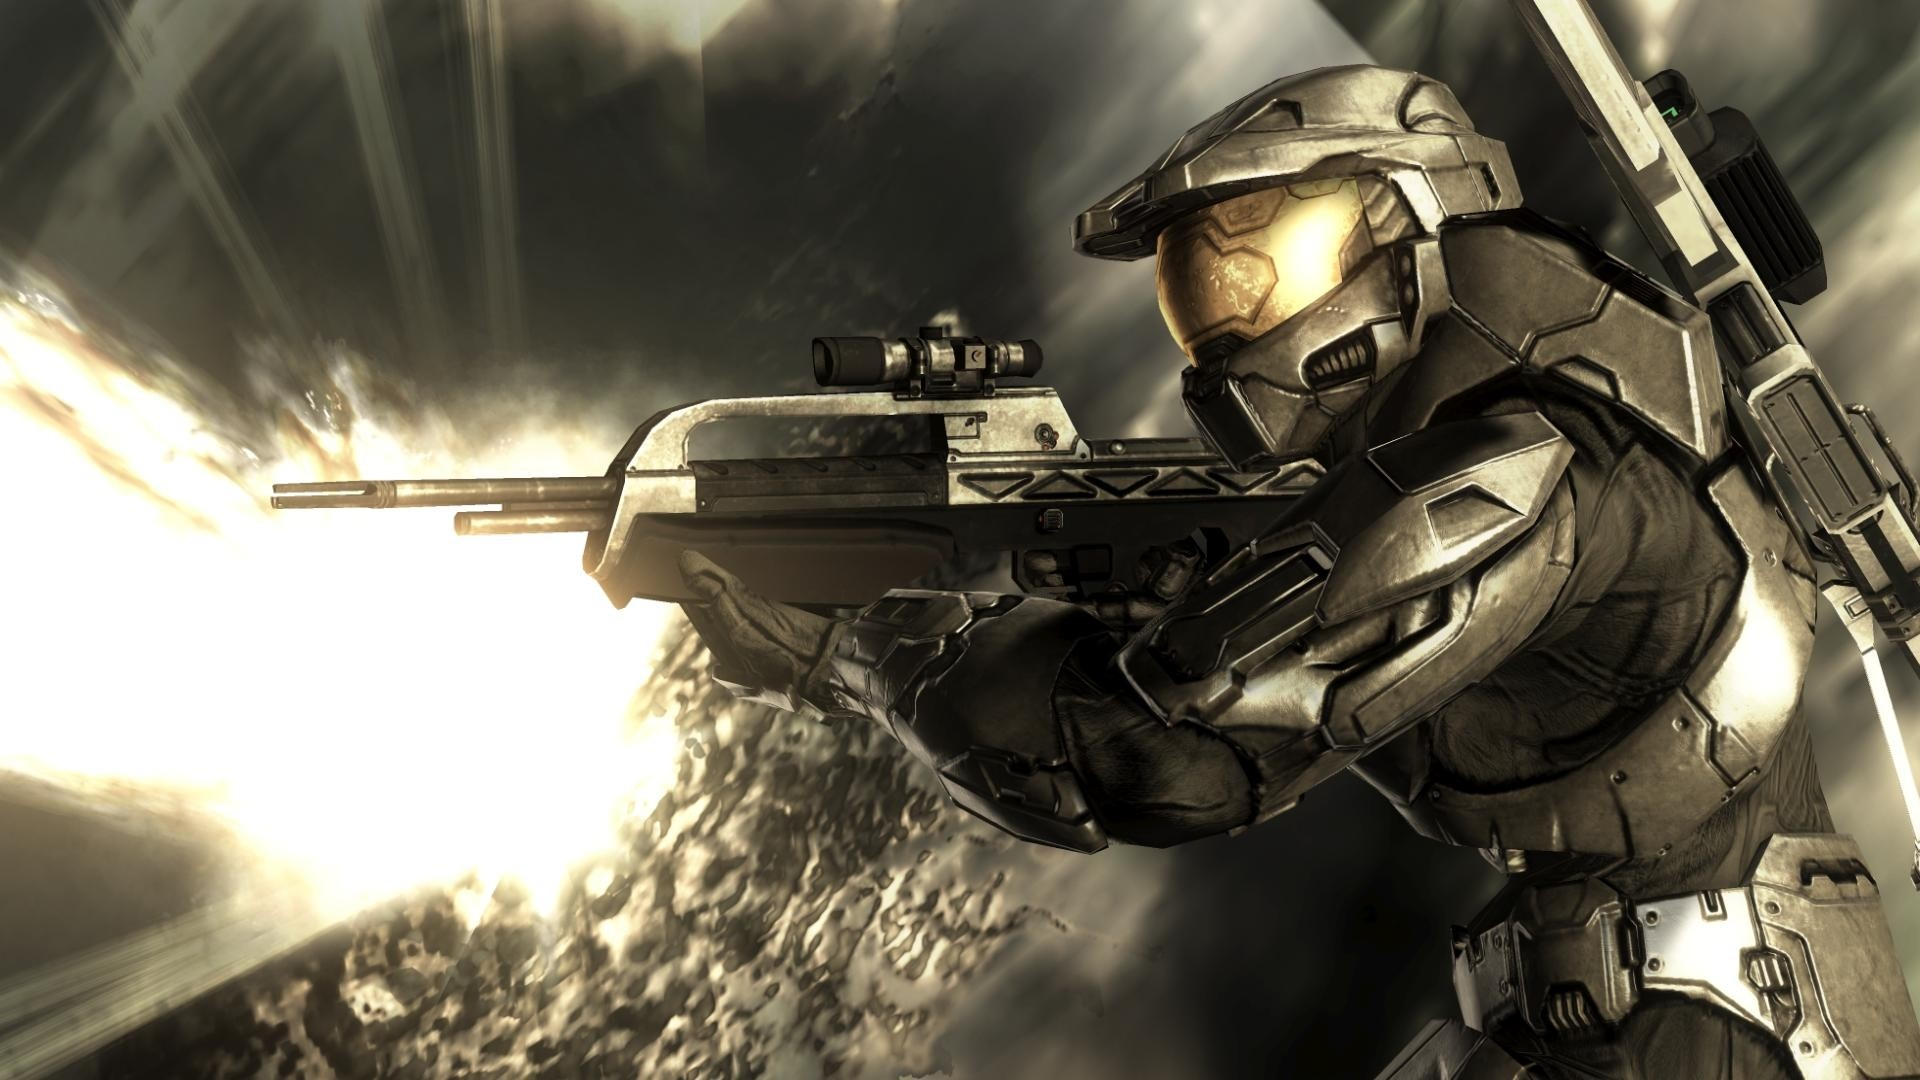 Halo 1080p Wallpaper 72 Images